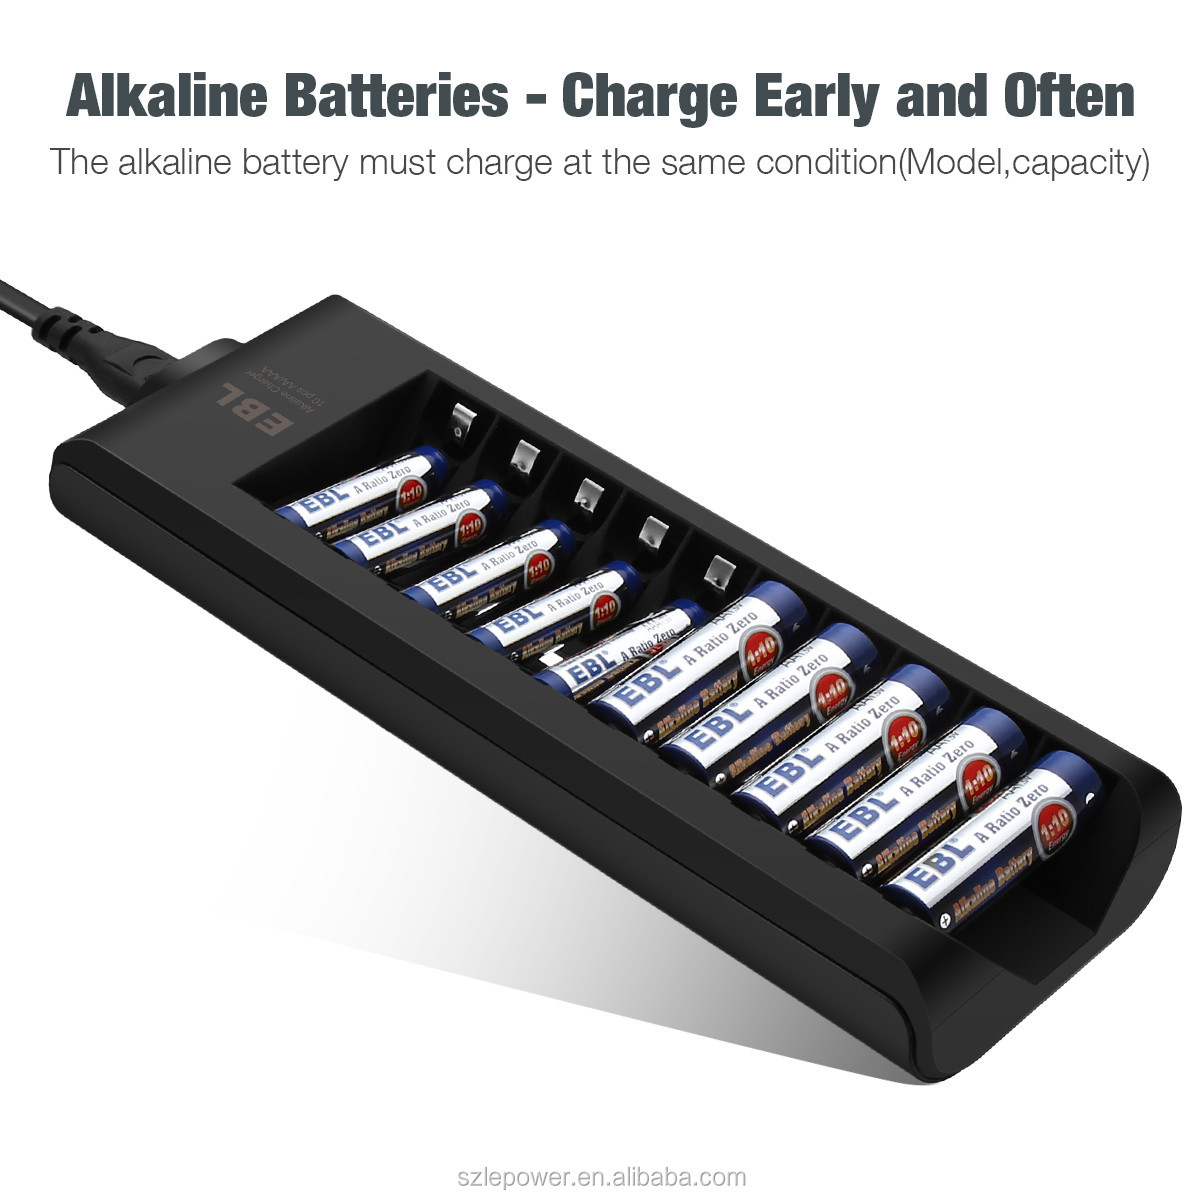 Quick Charge Alkaline Battery Charger 10 Slot for AA AAA Alkaline Dry Battery